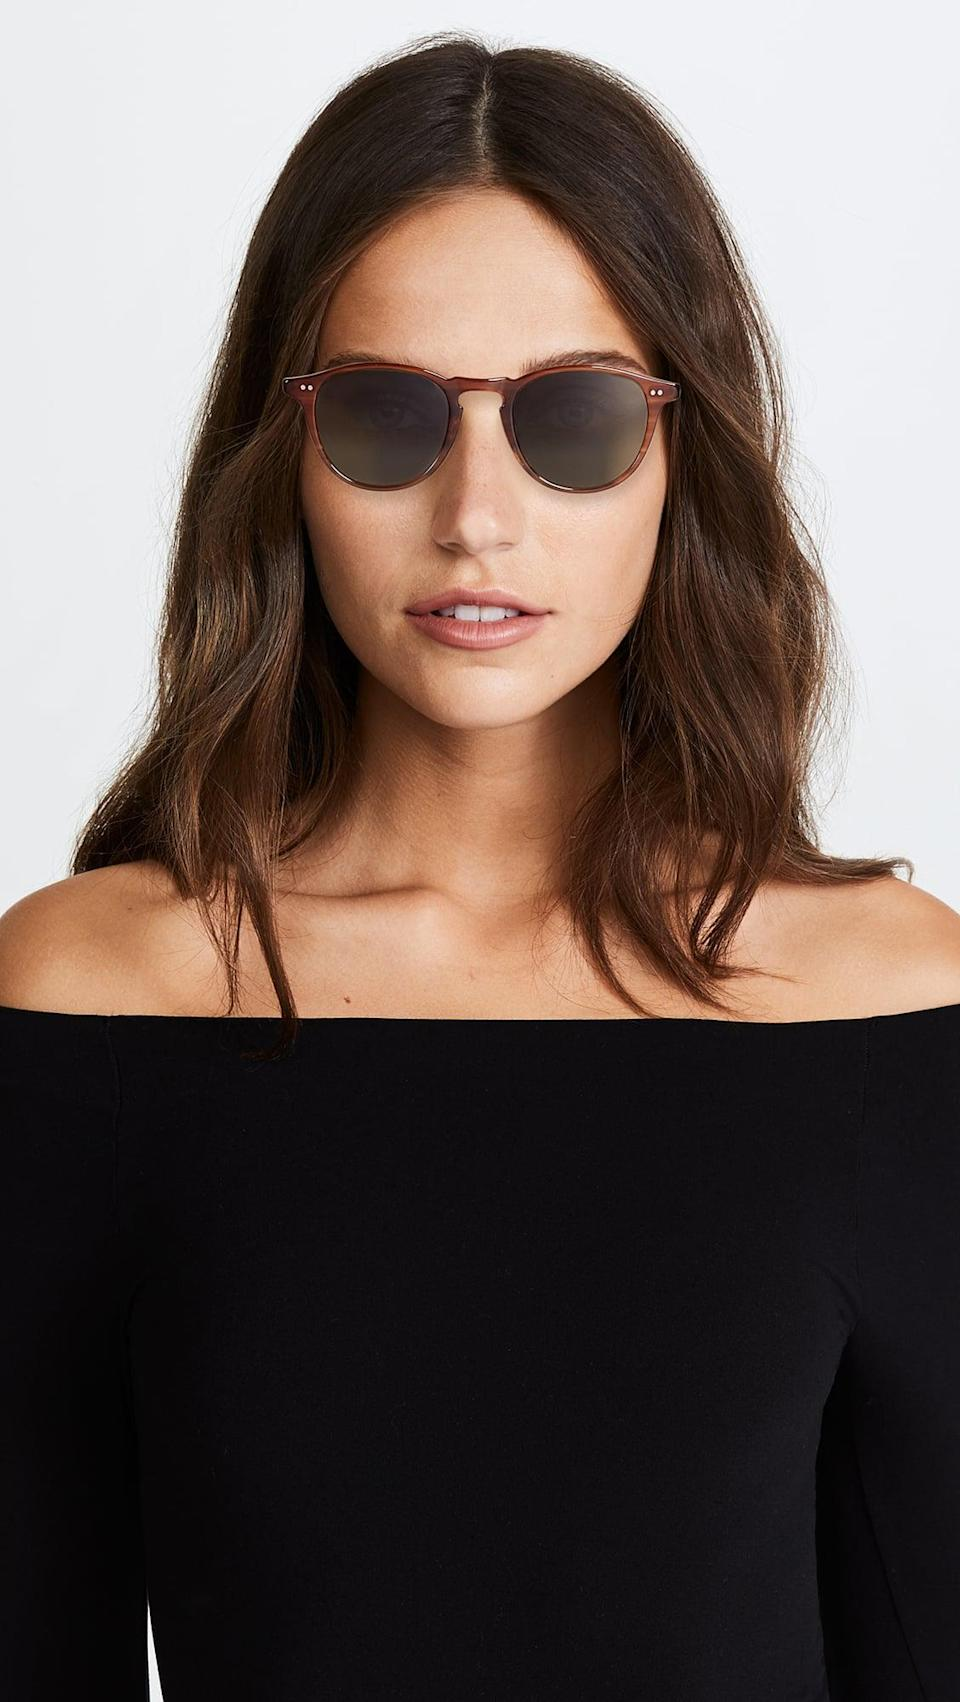 <p>We love Garrett Leight's timeless yet modern styles, and these <span>Garrett Leight Hampton Polar Sunglasses</span> ($420) are constant favorites. The light brown frames paired with the green lenses are so chic.</p>